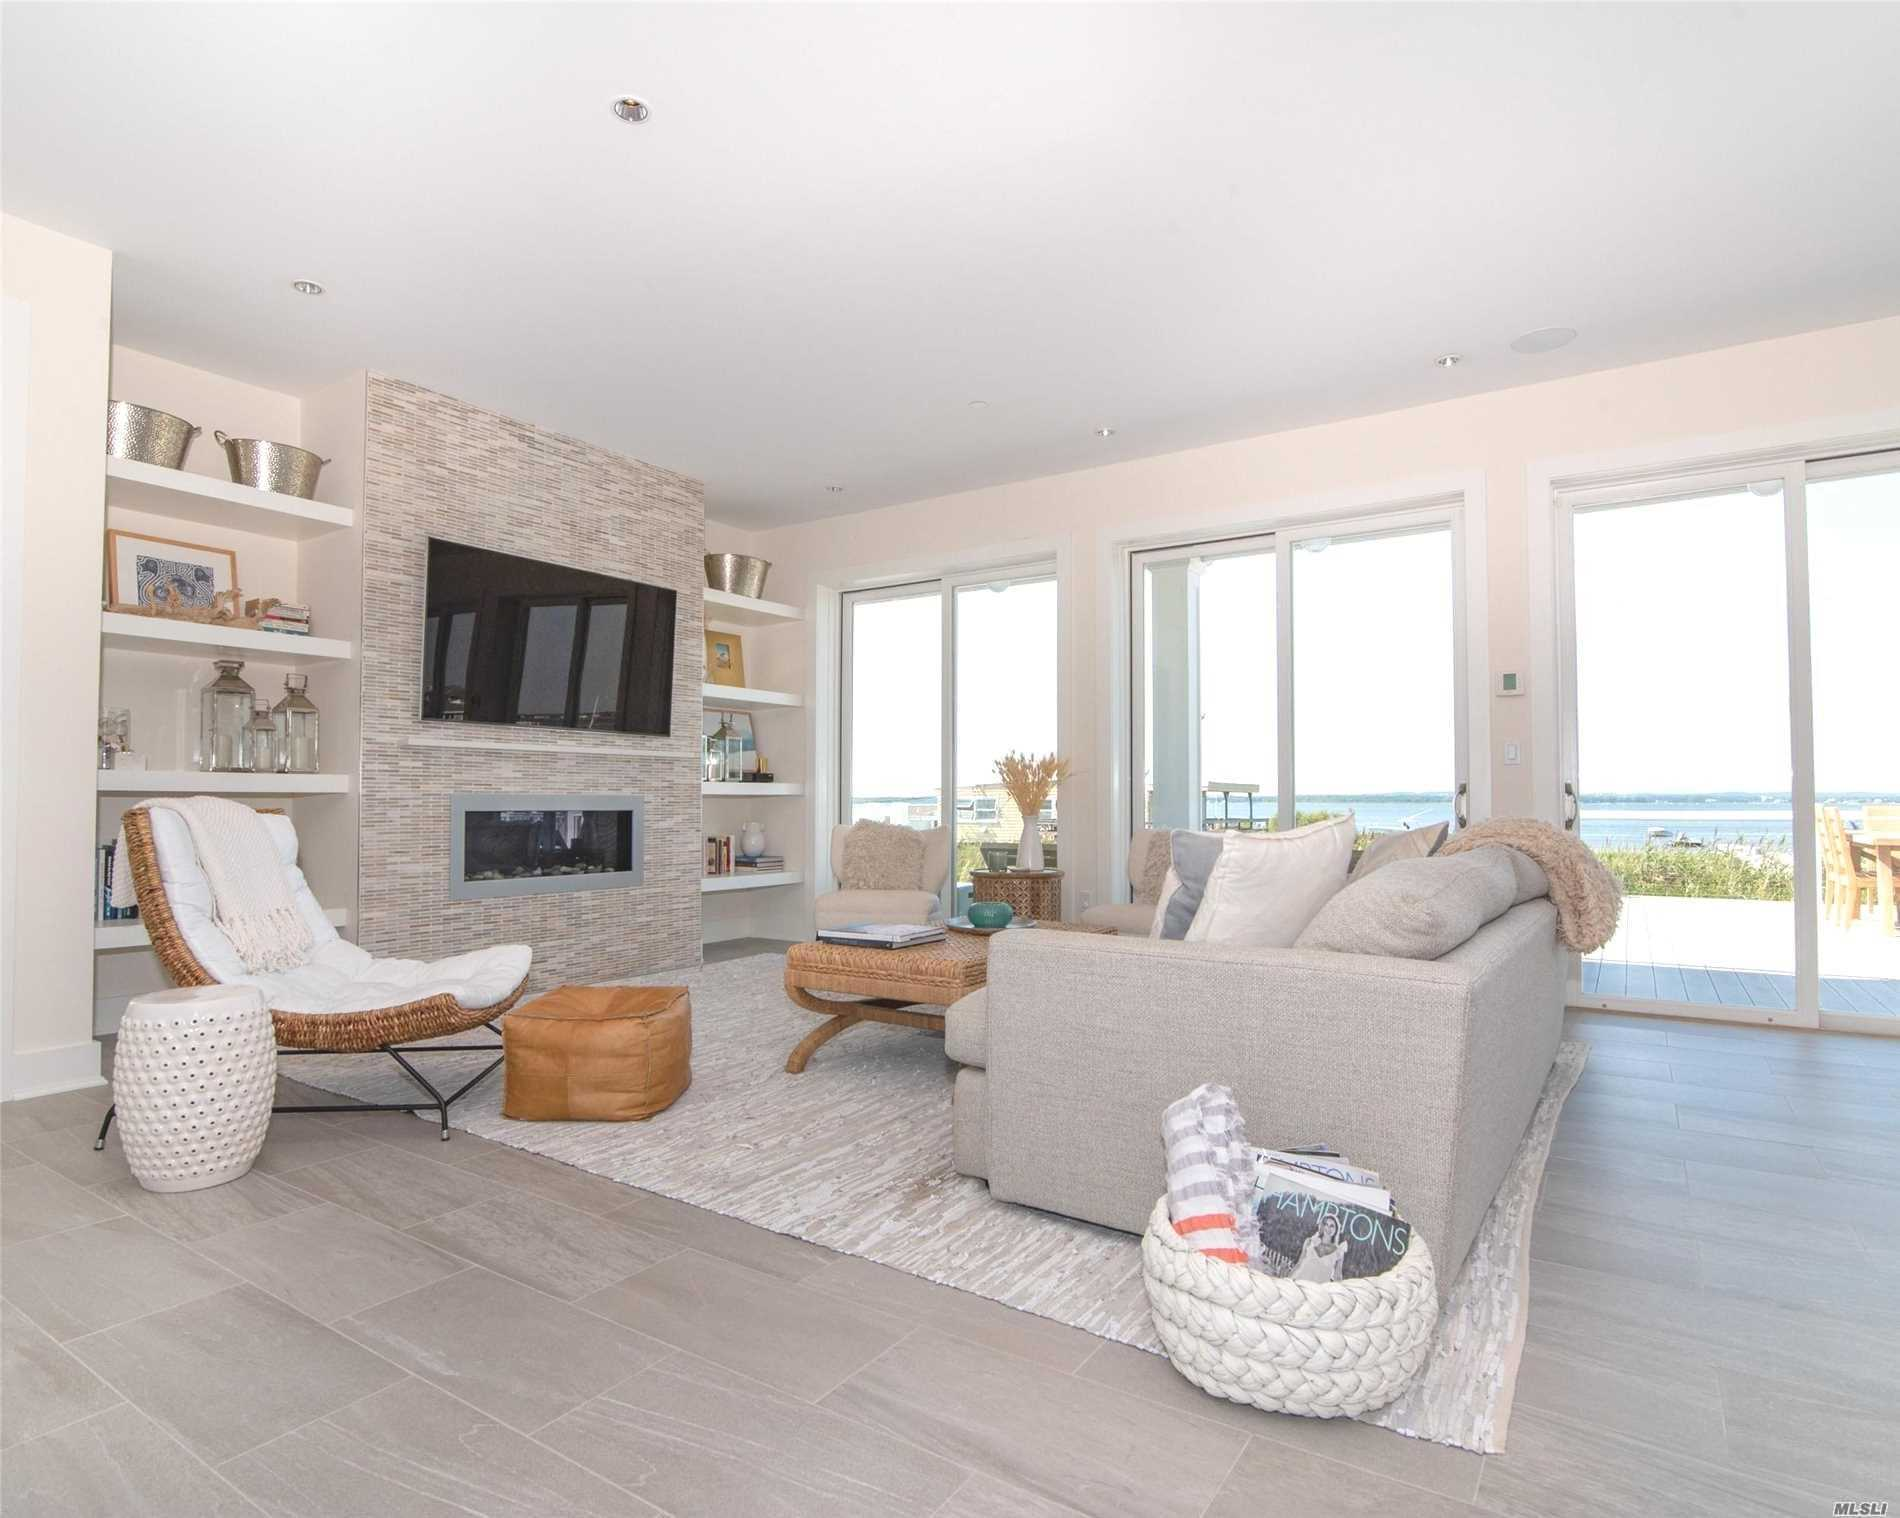 Built In 2014 This 4 Bedroom, 4 Bath Home Has All The Amentities Of A Newly Built Home! Boasts An Open Floor Plan With A Full 3rd Floor Den & Bathroom, Panoramic Ocean & Bay Views And A Relaxing Bayside Infinity Edge Heated Pool. A Deeded Walkway To Both Bay & Ocean Complete The Picture For This Amazing Home!